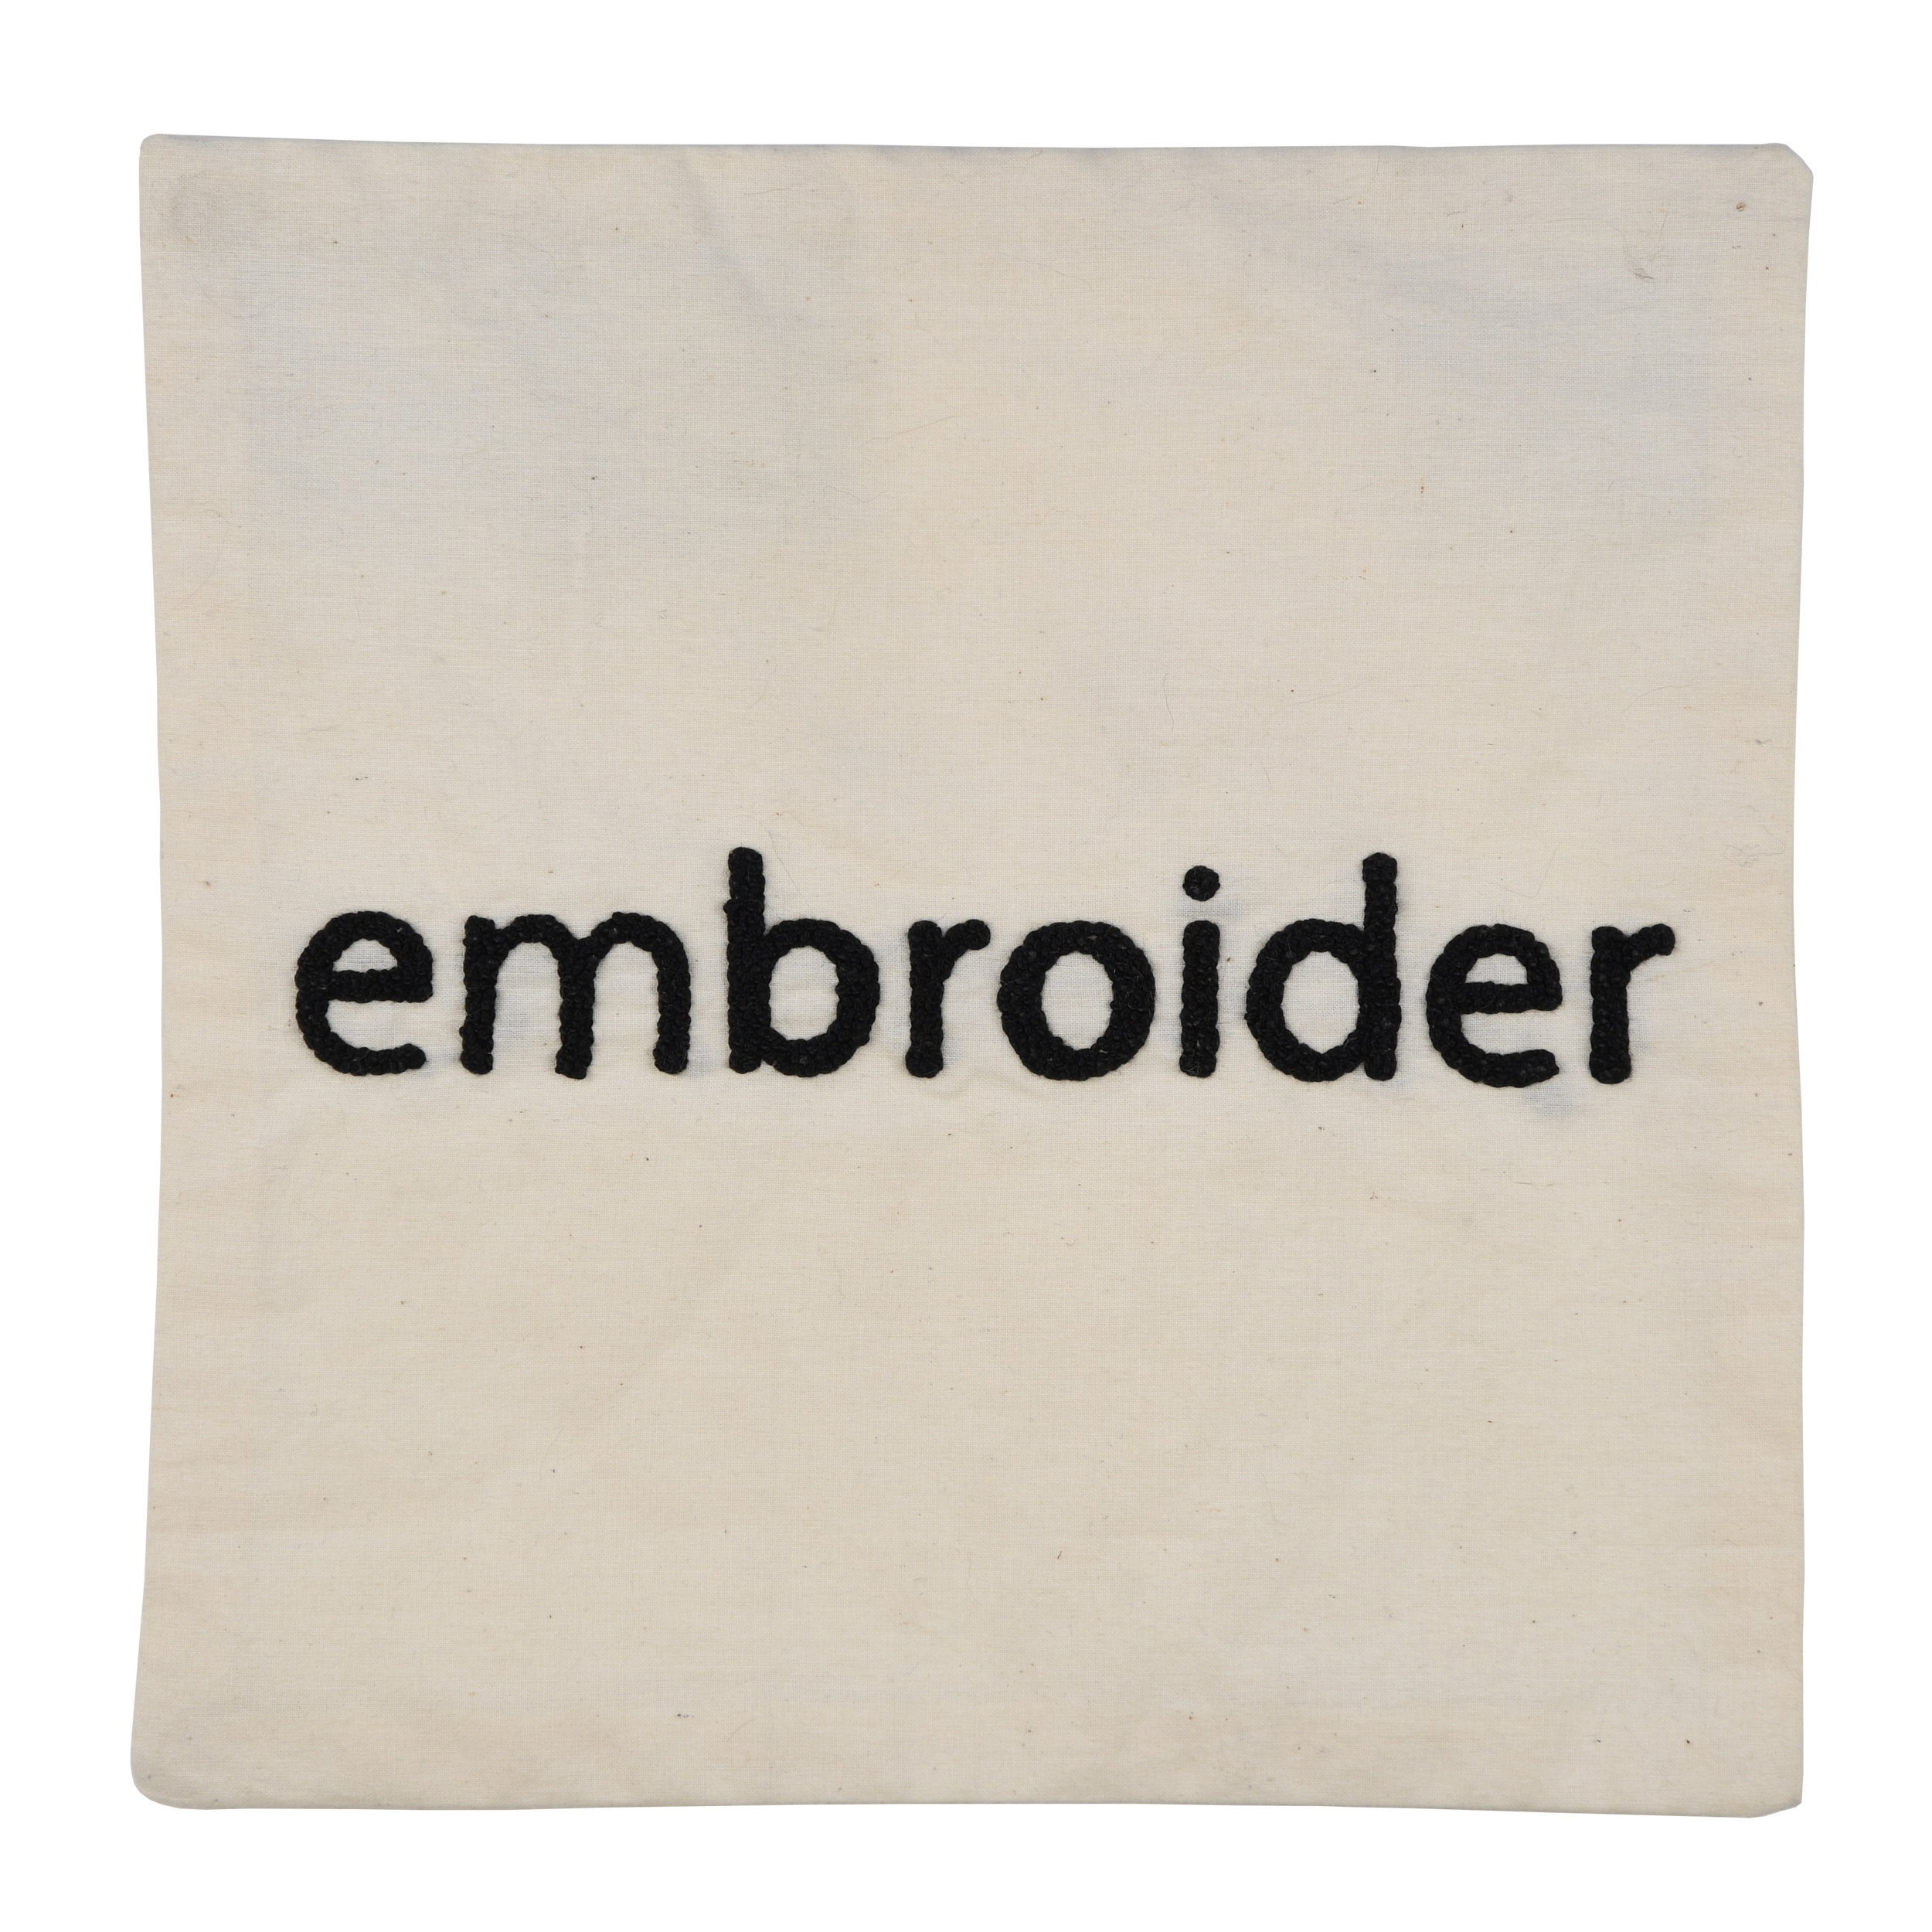 embroider.png